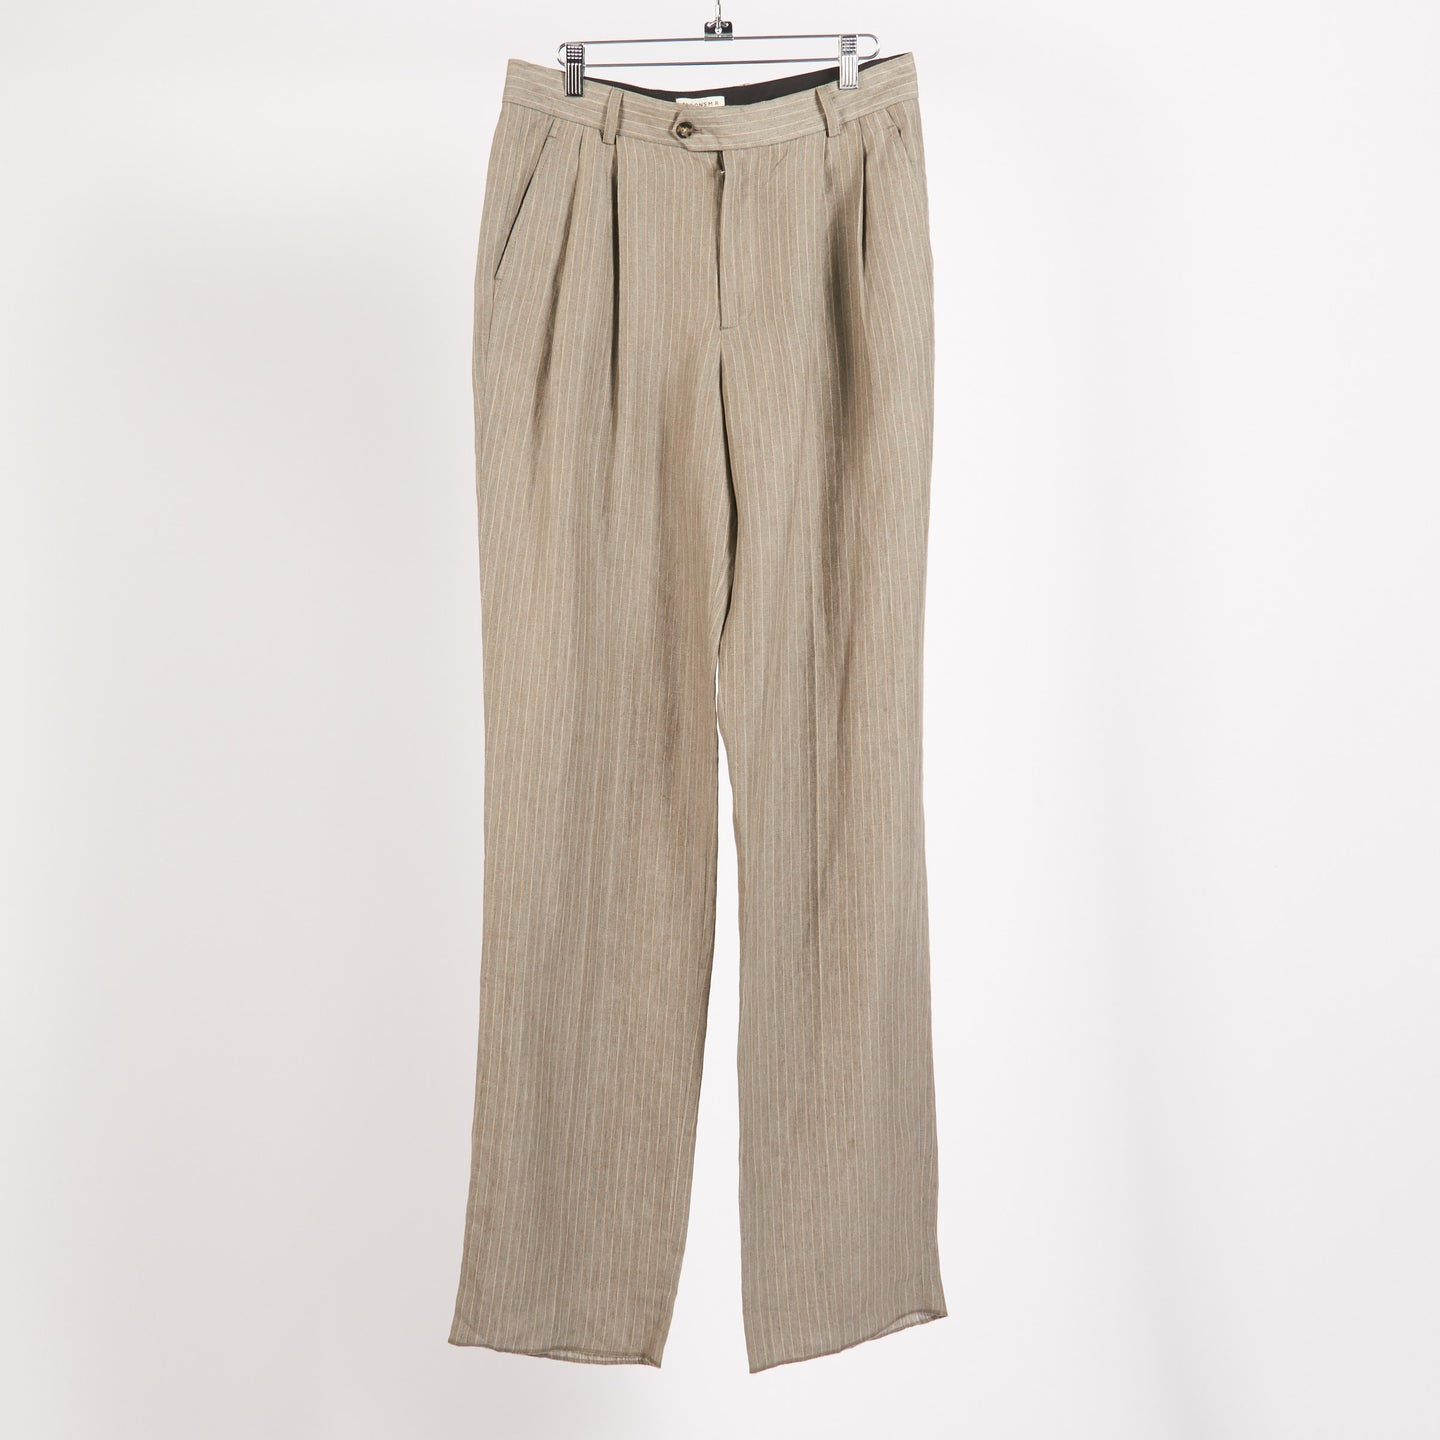 Stone/Blue High Waisted Paul Pleated Pants (Size 48, 52)